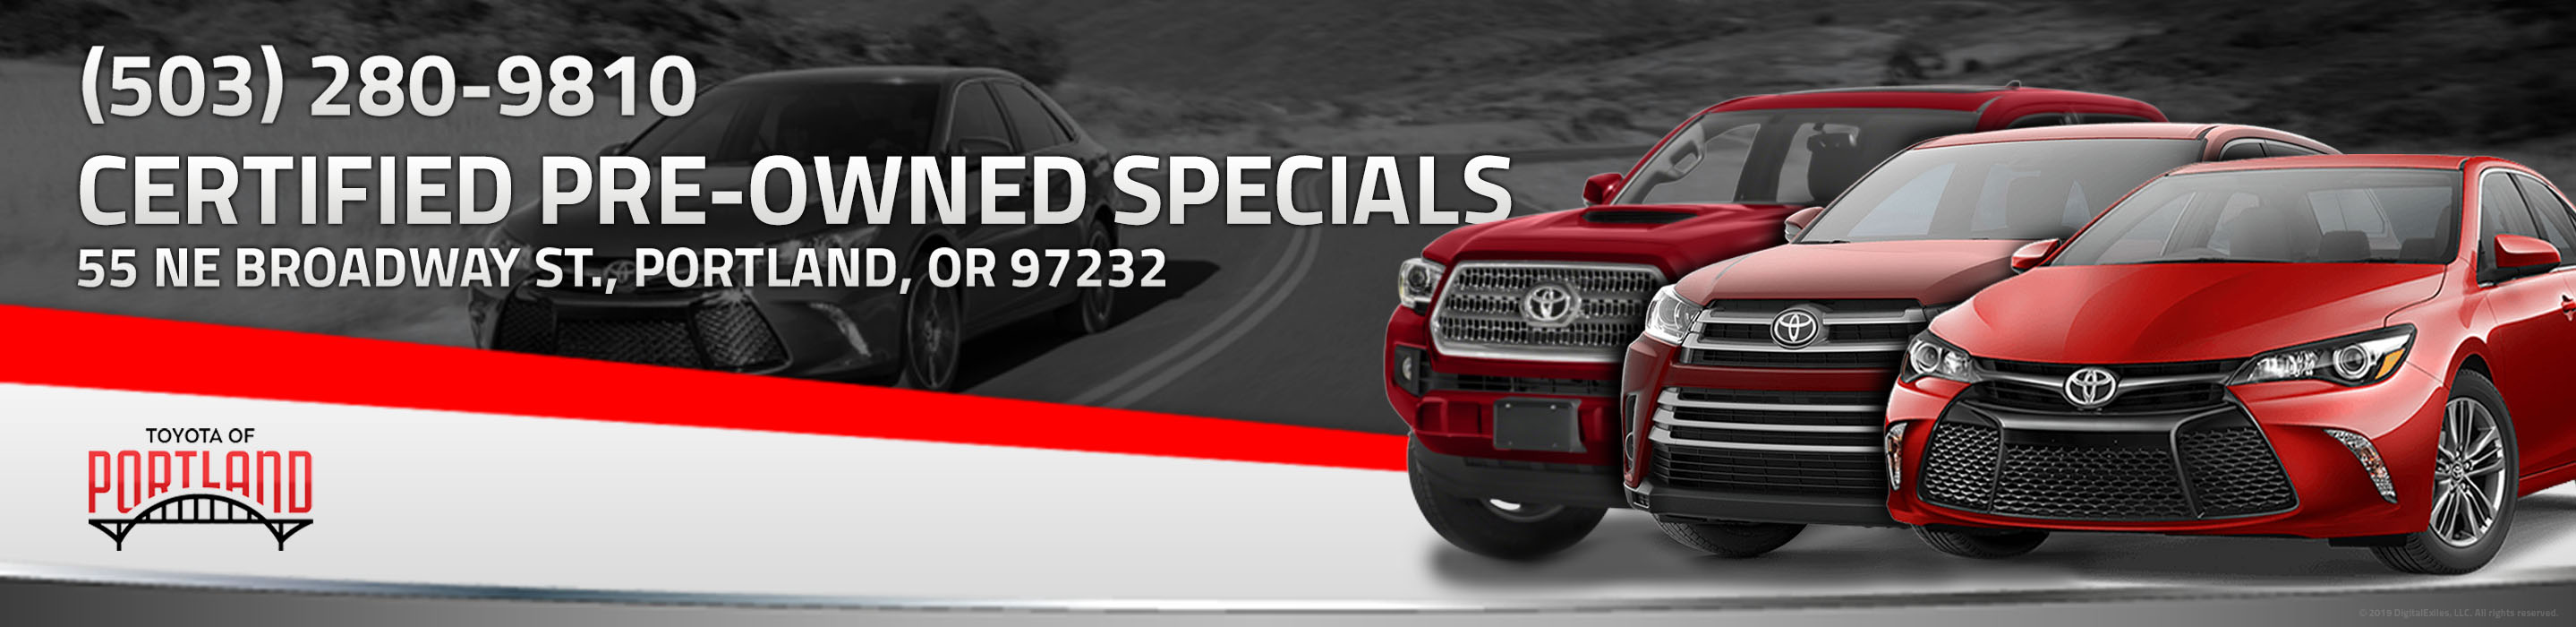 Our Lowest Payment Toyota Certified Used Trucks, Cars & SUVs For Sale in Portland, OR